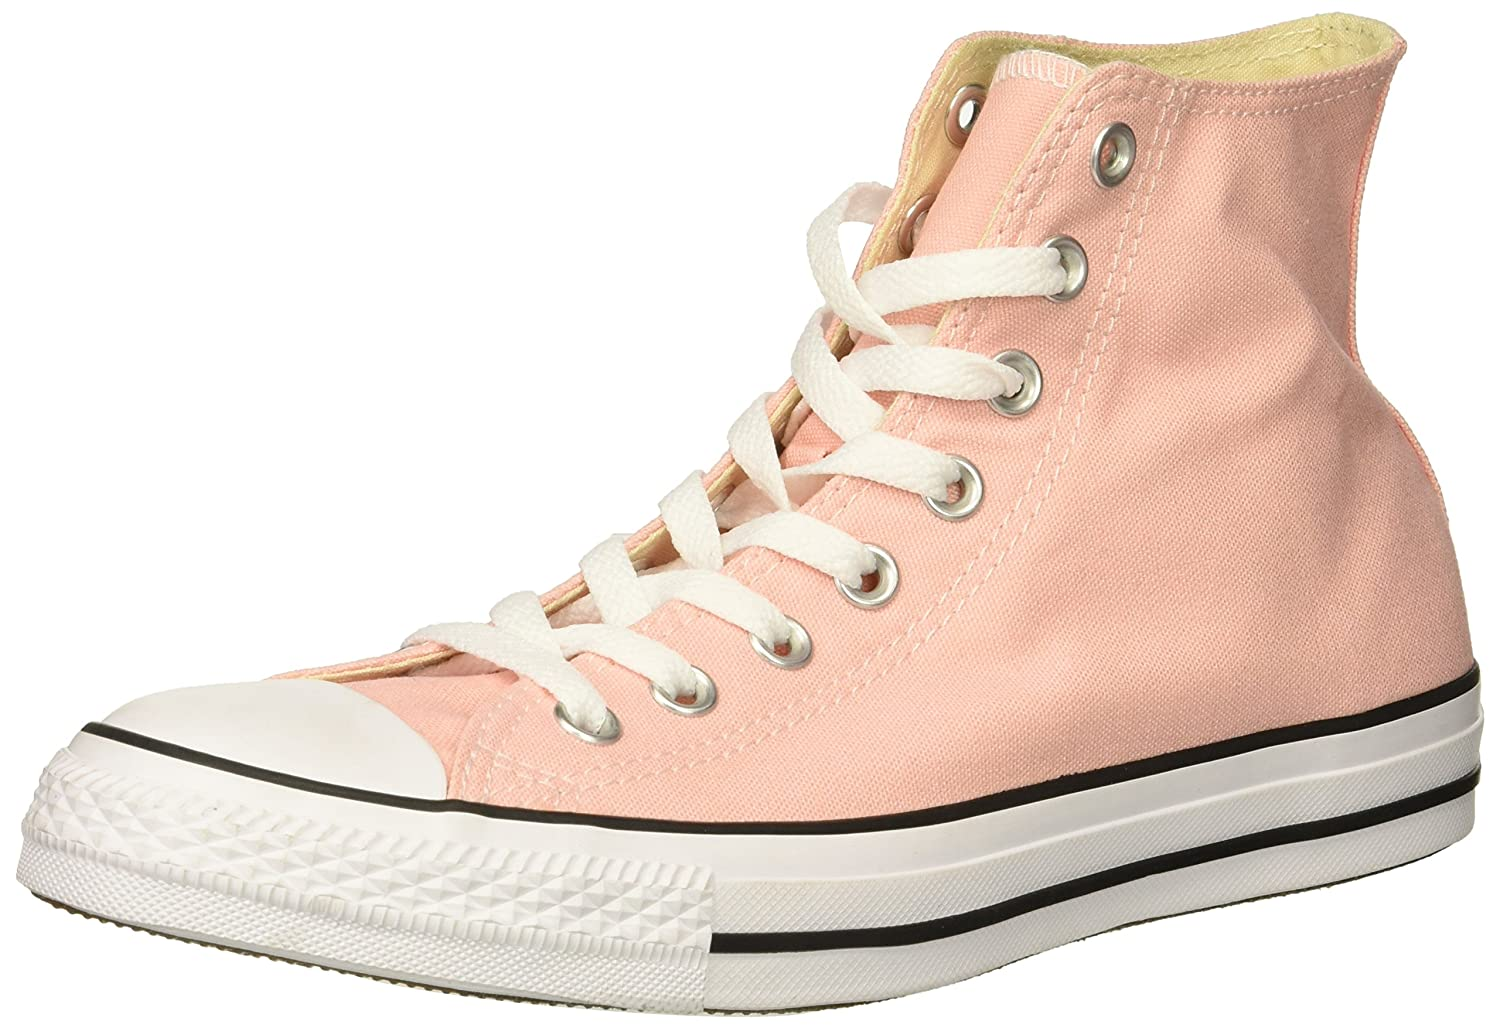 Converse Sneakers Chuck Taylor Etoiles Low Top Sneakers Sneaker Mode Pink Low Storm Pink 052e7fb - shopssong.space